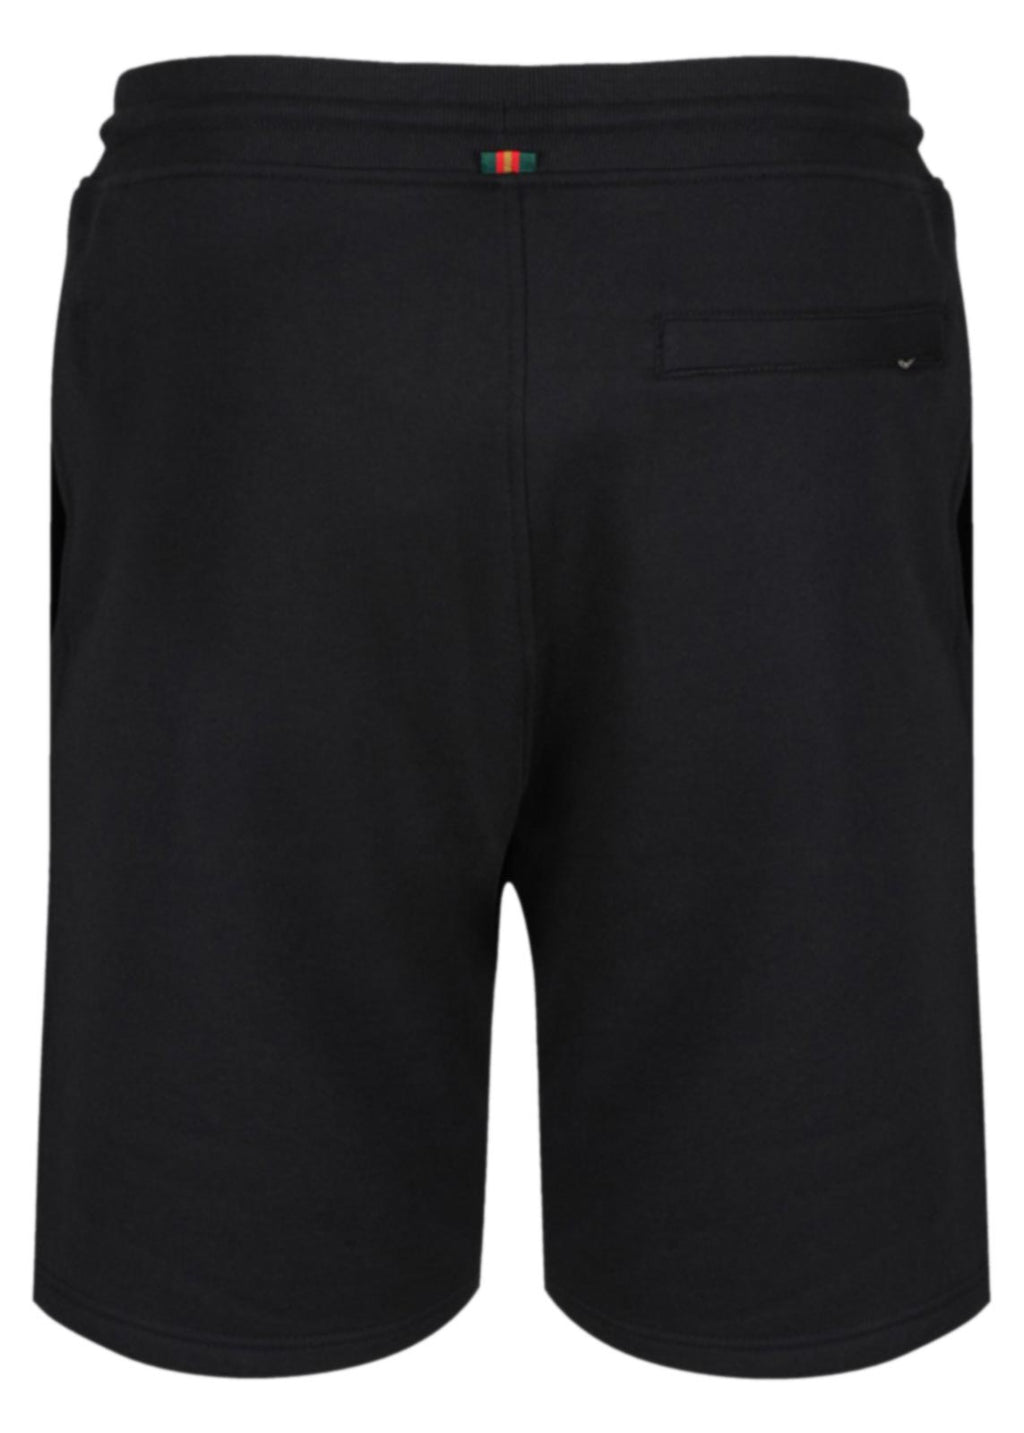 Luke 1977 Amsterdam 2 Sweat Shorts Black